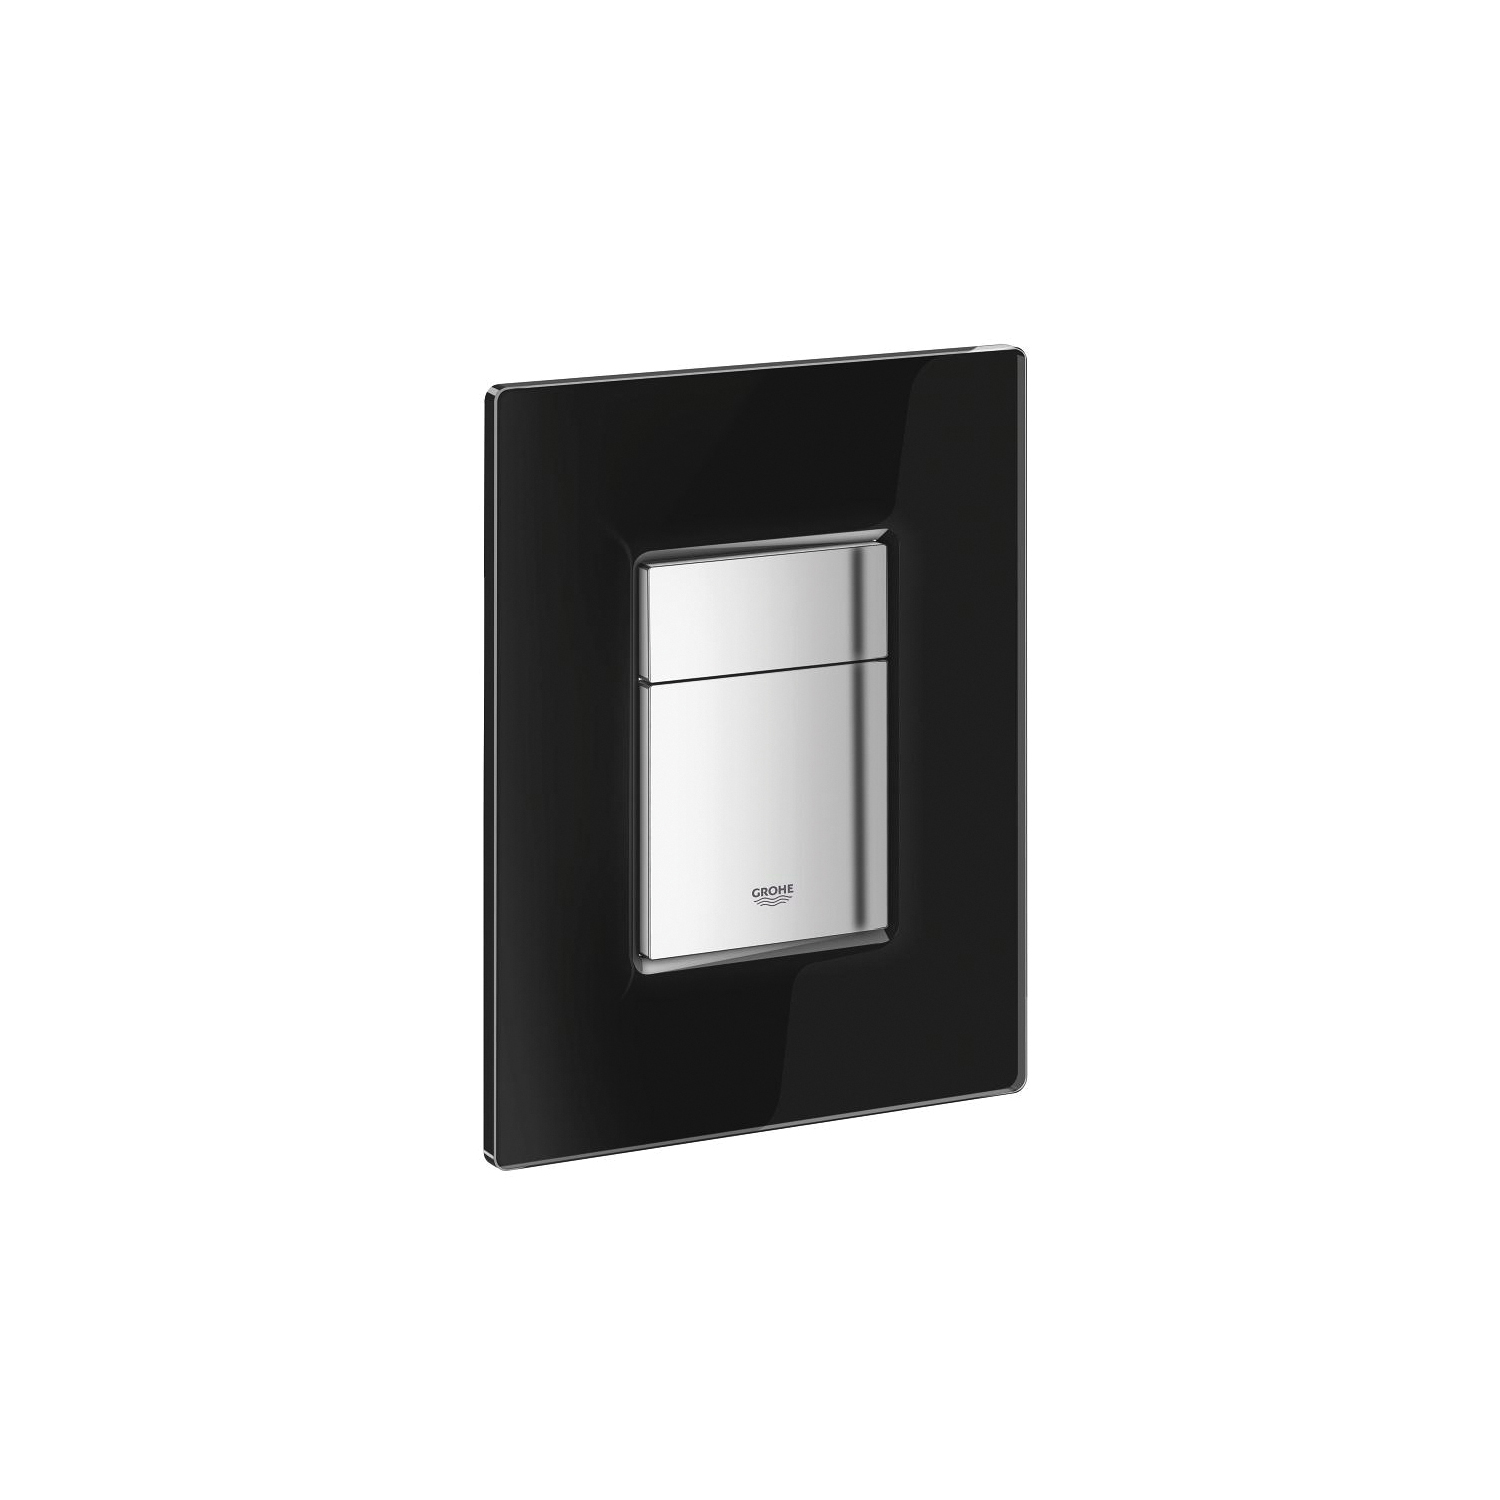 GROHE 38845KS0 Skate Cosmopolitan Wall Plate With Glass Surface, For Use With Dual Flush or Start/Stop Actuation and AV1 Pneumatic Discharge Valve, Plastic/Tempered Glass, StarLight® Velvet Black, Import